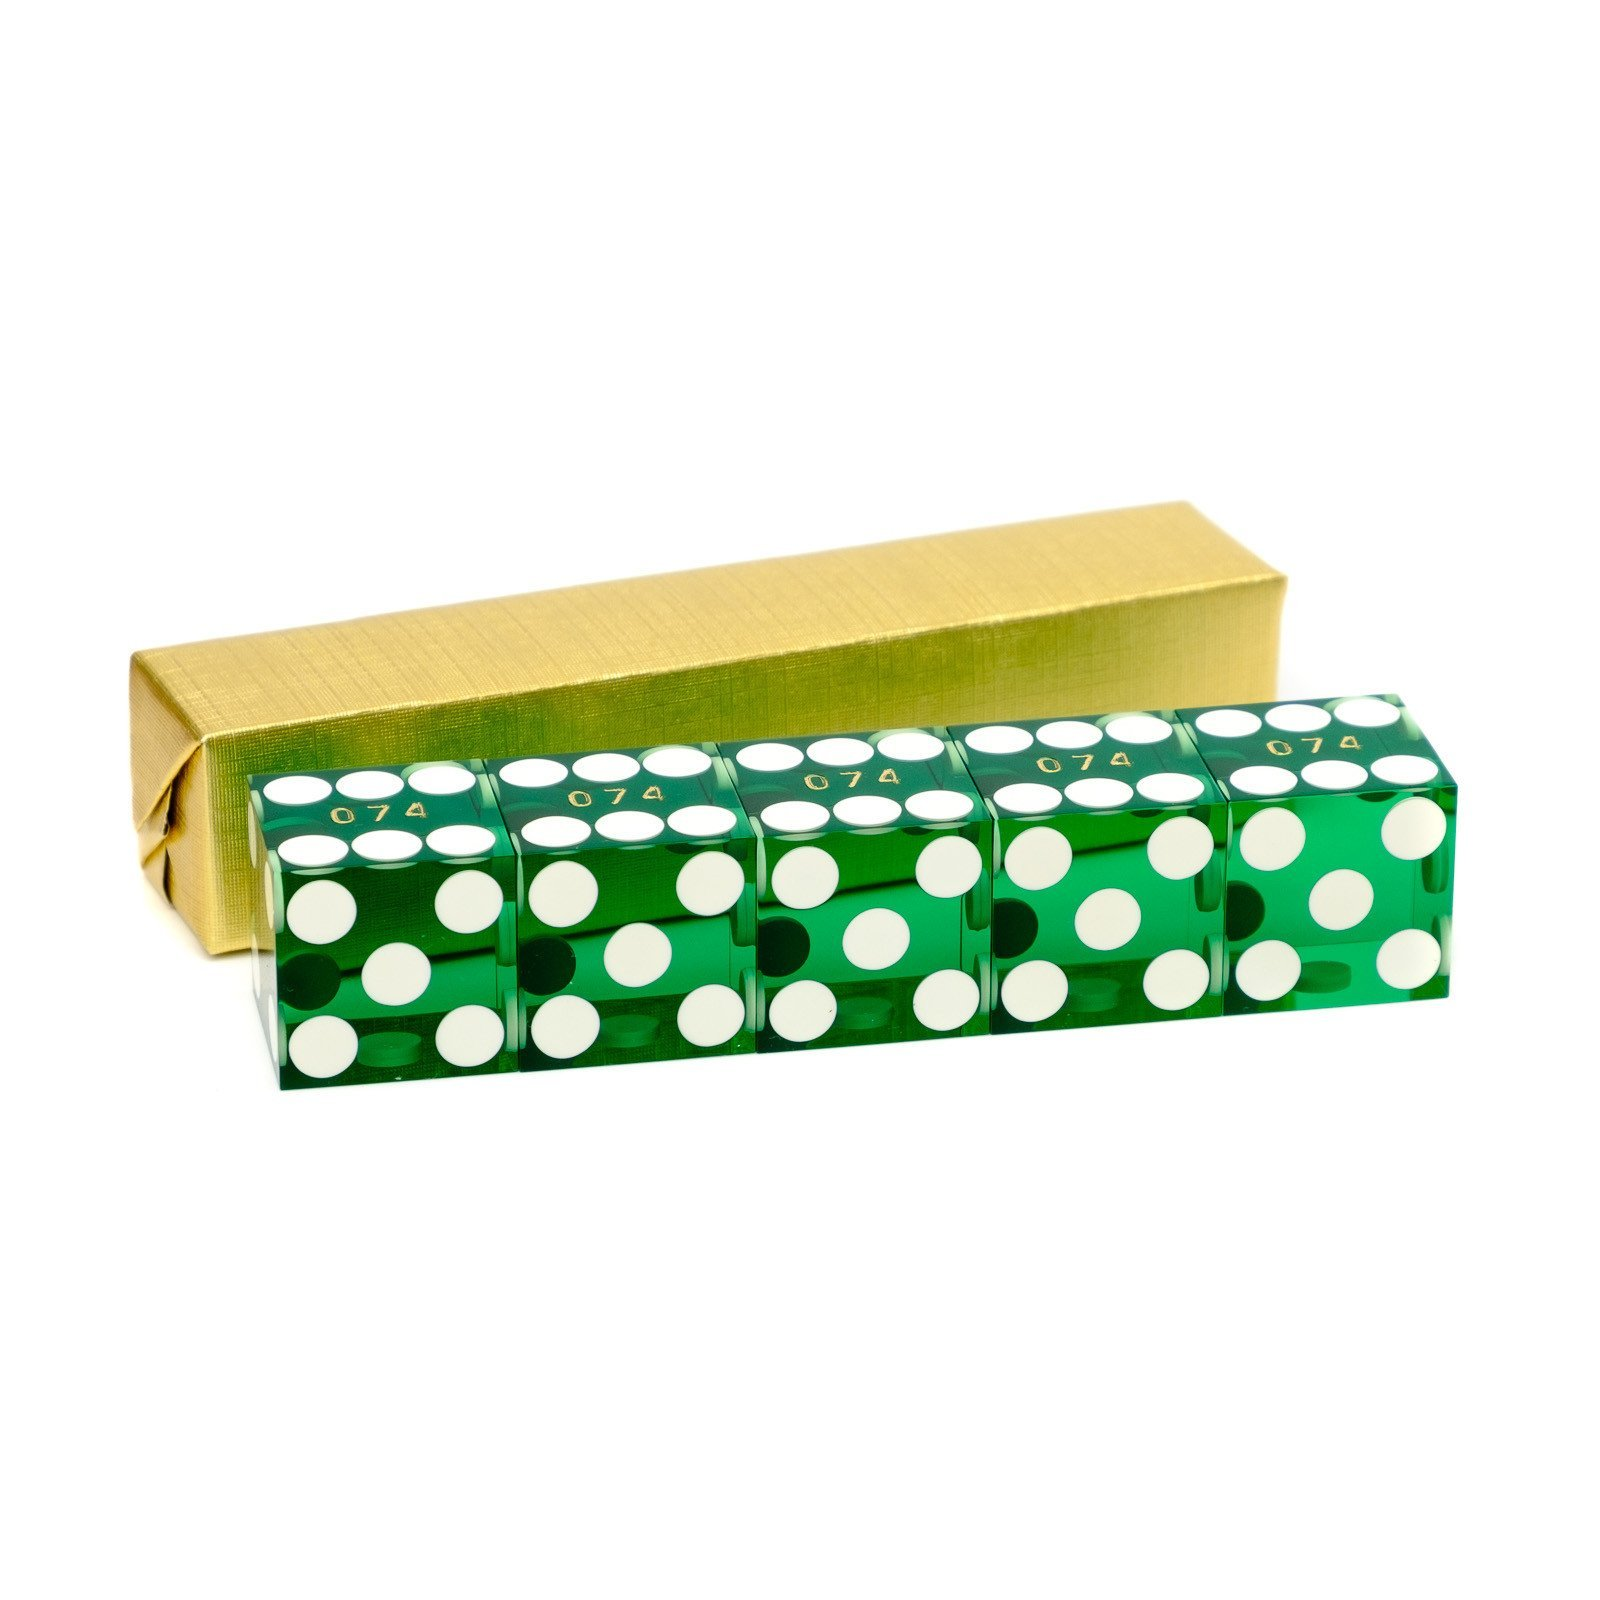 Green serialized casino dice